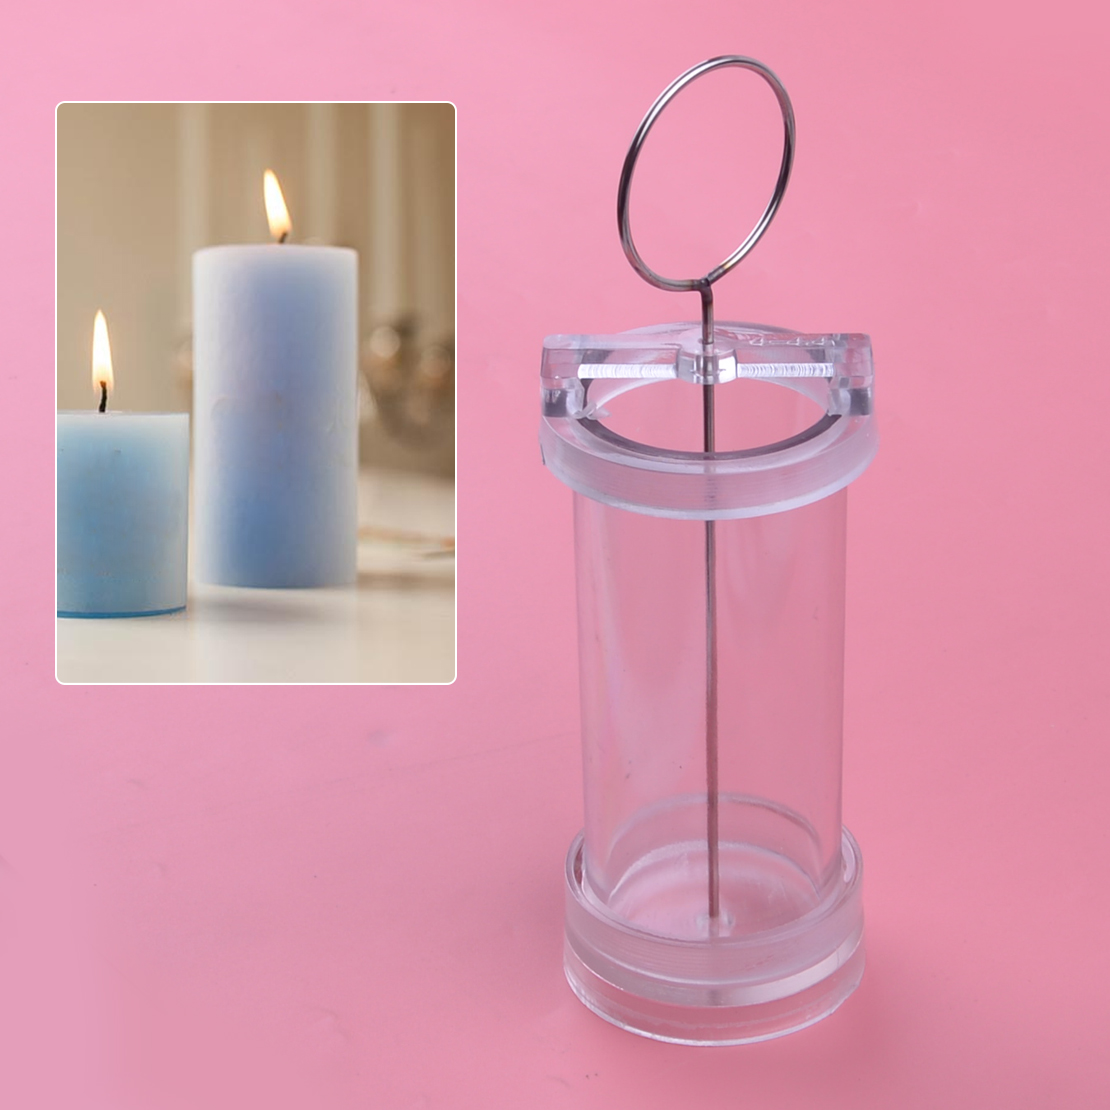 1 set Clear Egg Shaped Candle Mold Candle Making Model for DIY Candle Crafts